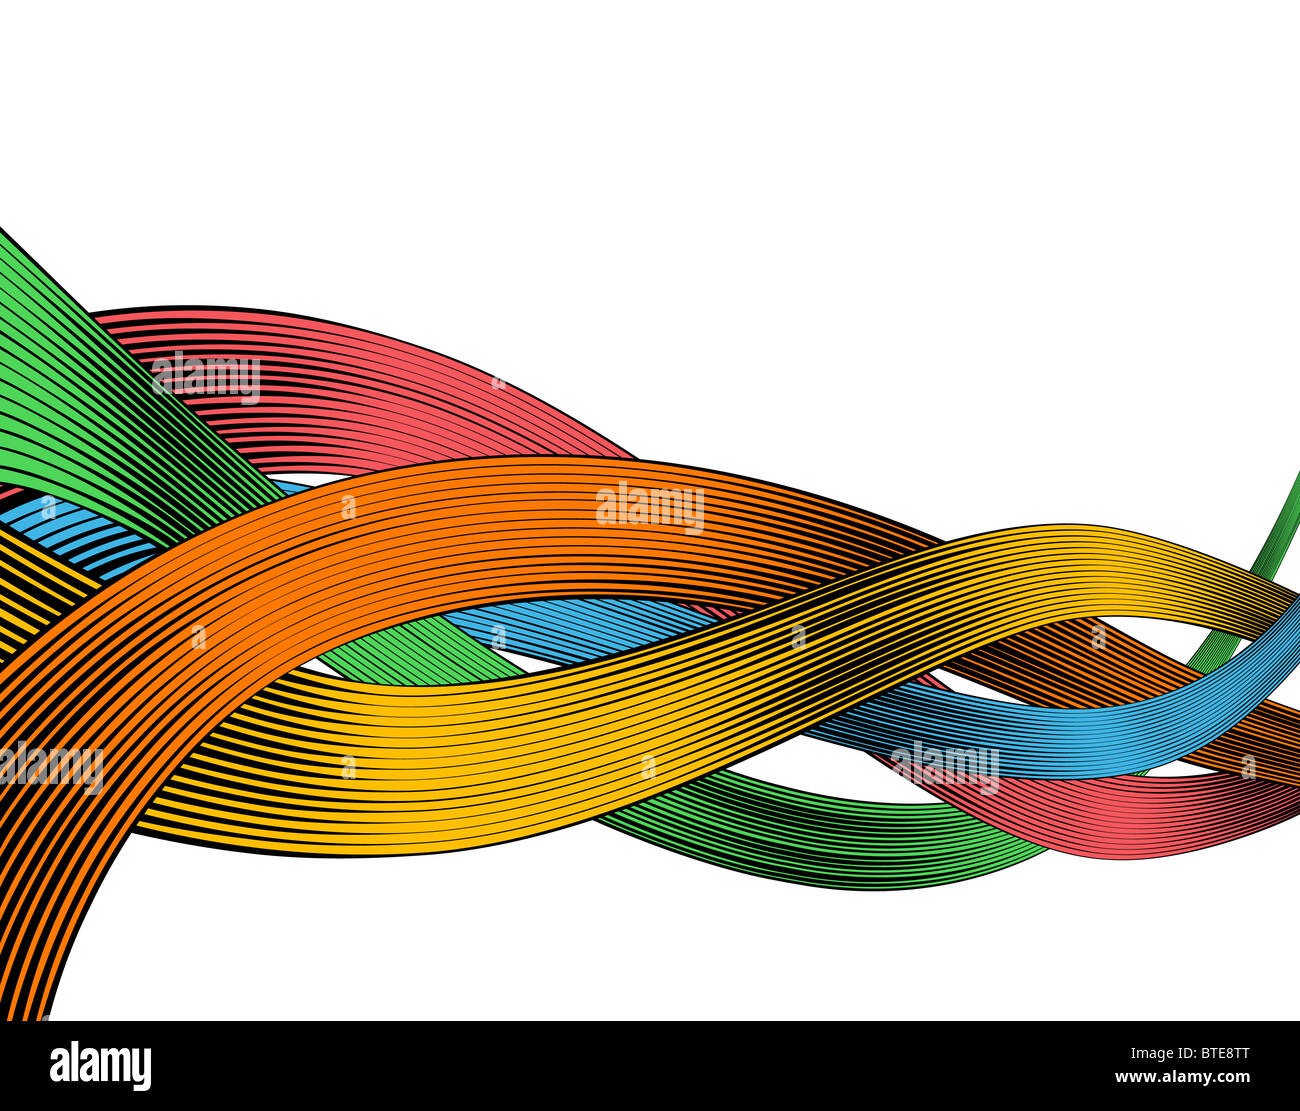 Abstract illustrated design of colorful ribbons in woodcut style - Stock Image